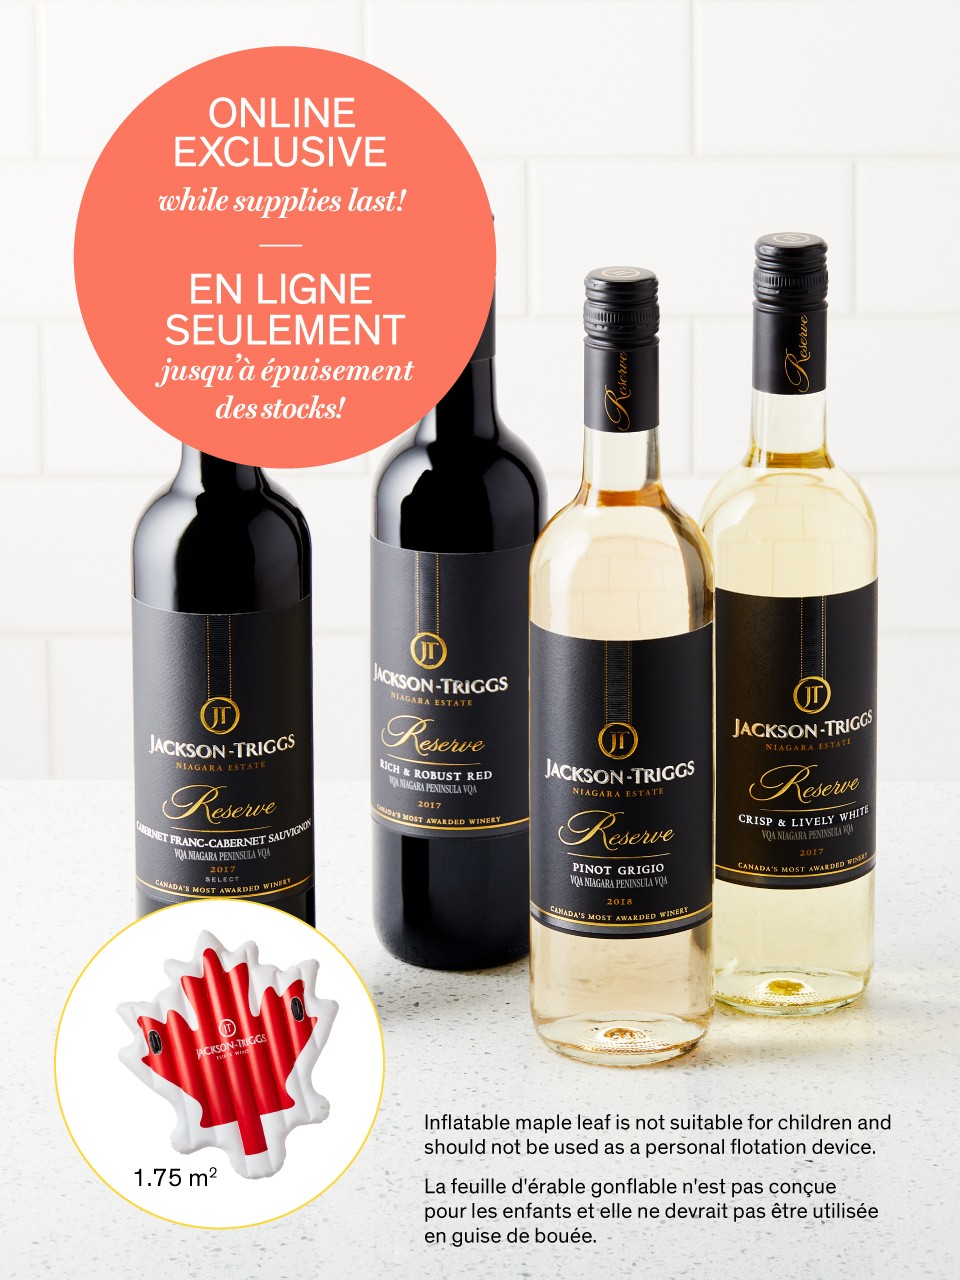 Image for Jackson-Triggs Wines + Canada Flag Pool Float Offer from LCBO